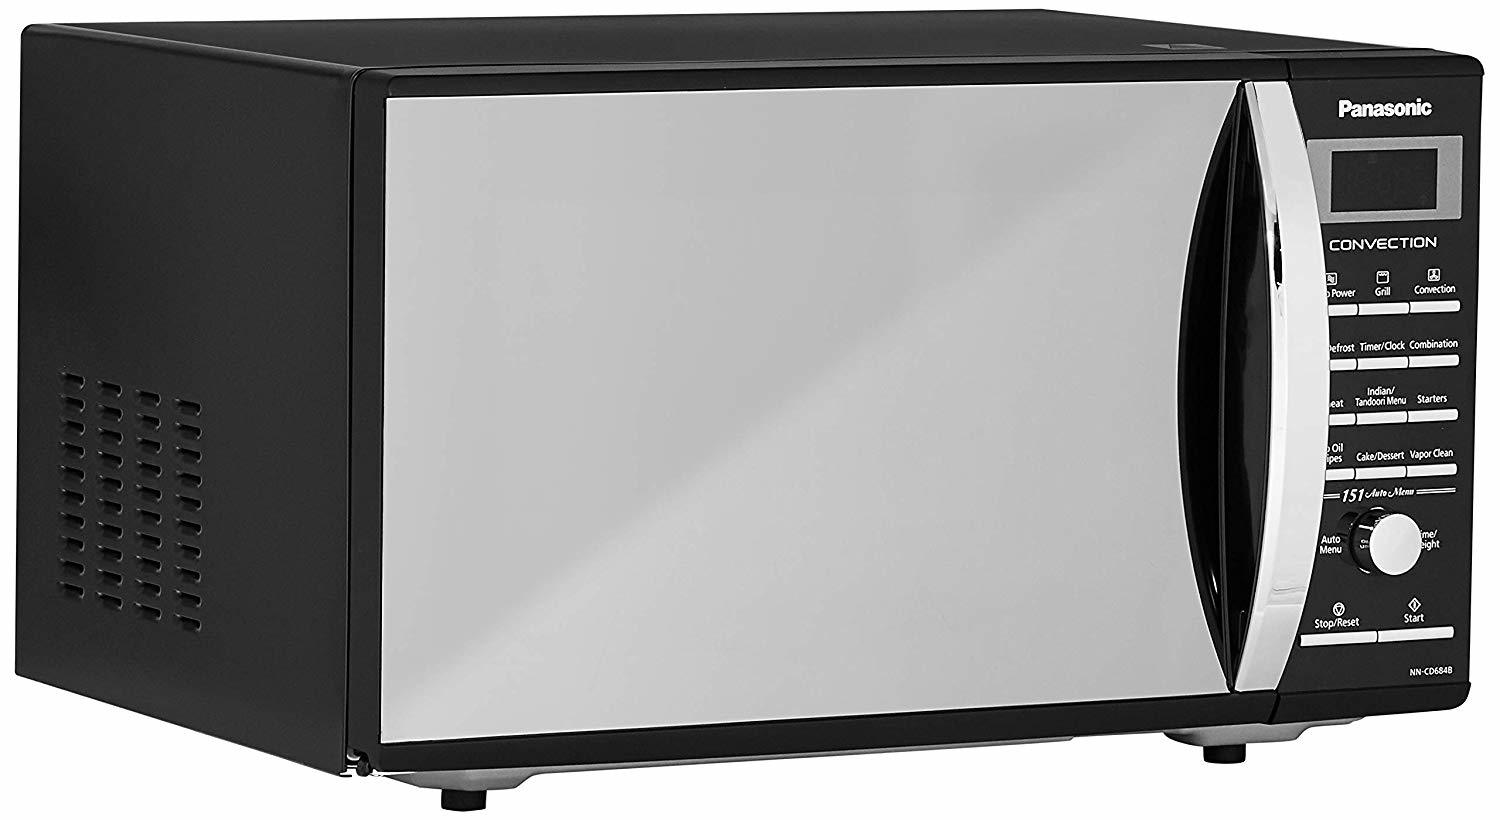 Panasonic 27 L Convection Microwave Oven (NN-CD684BFDG, Black)